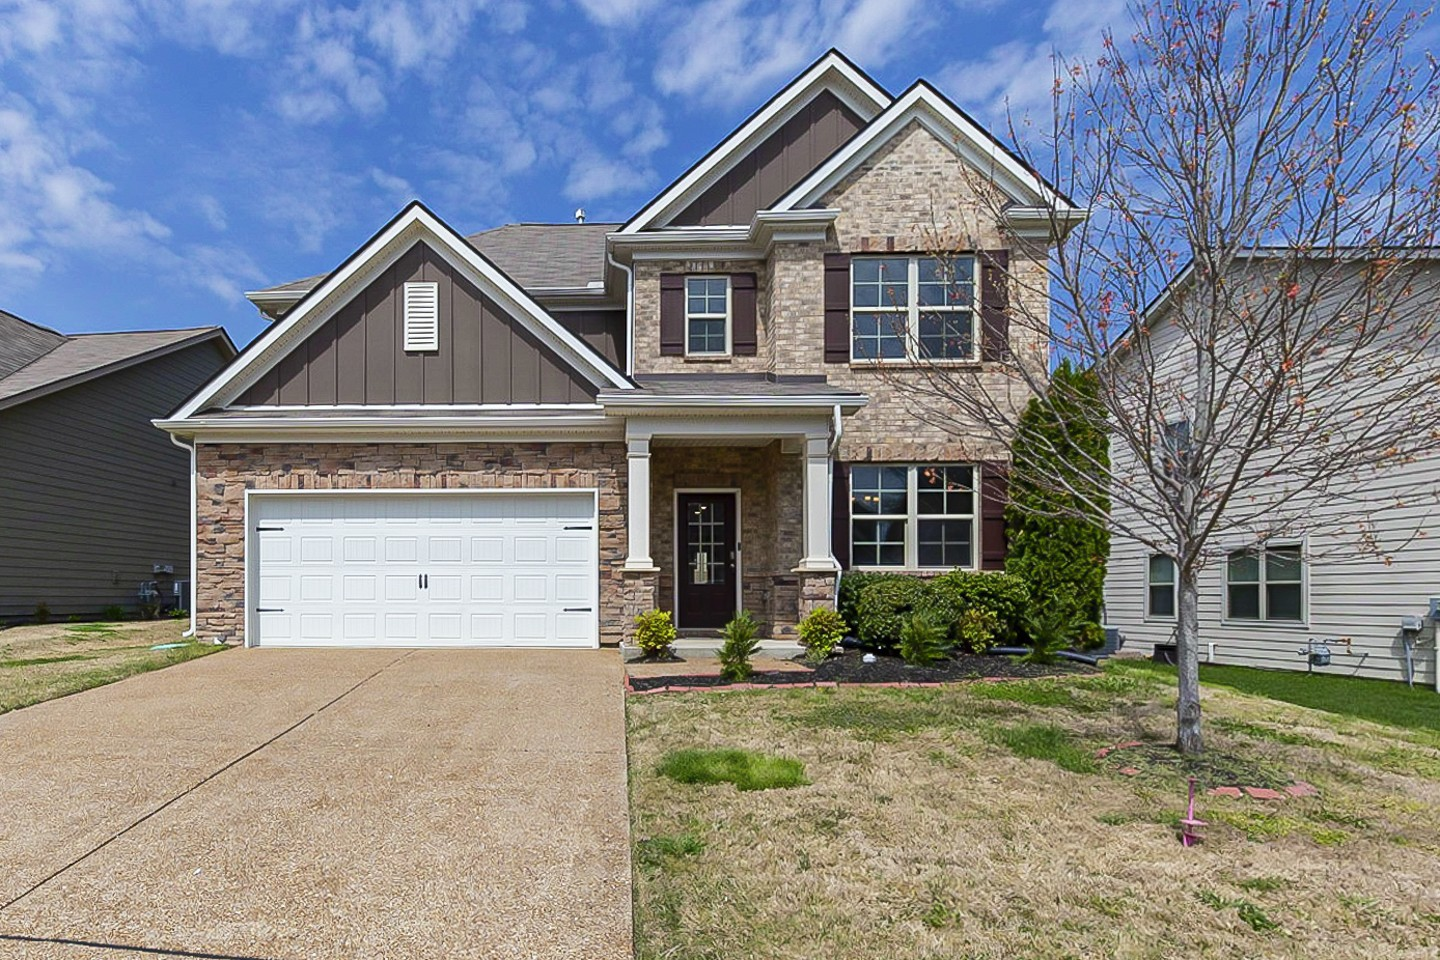 Built in 2015, this Spring Hill two-story cul-de-sac home offers a patio, granite countertops, and a two-car garage.